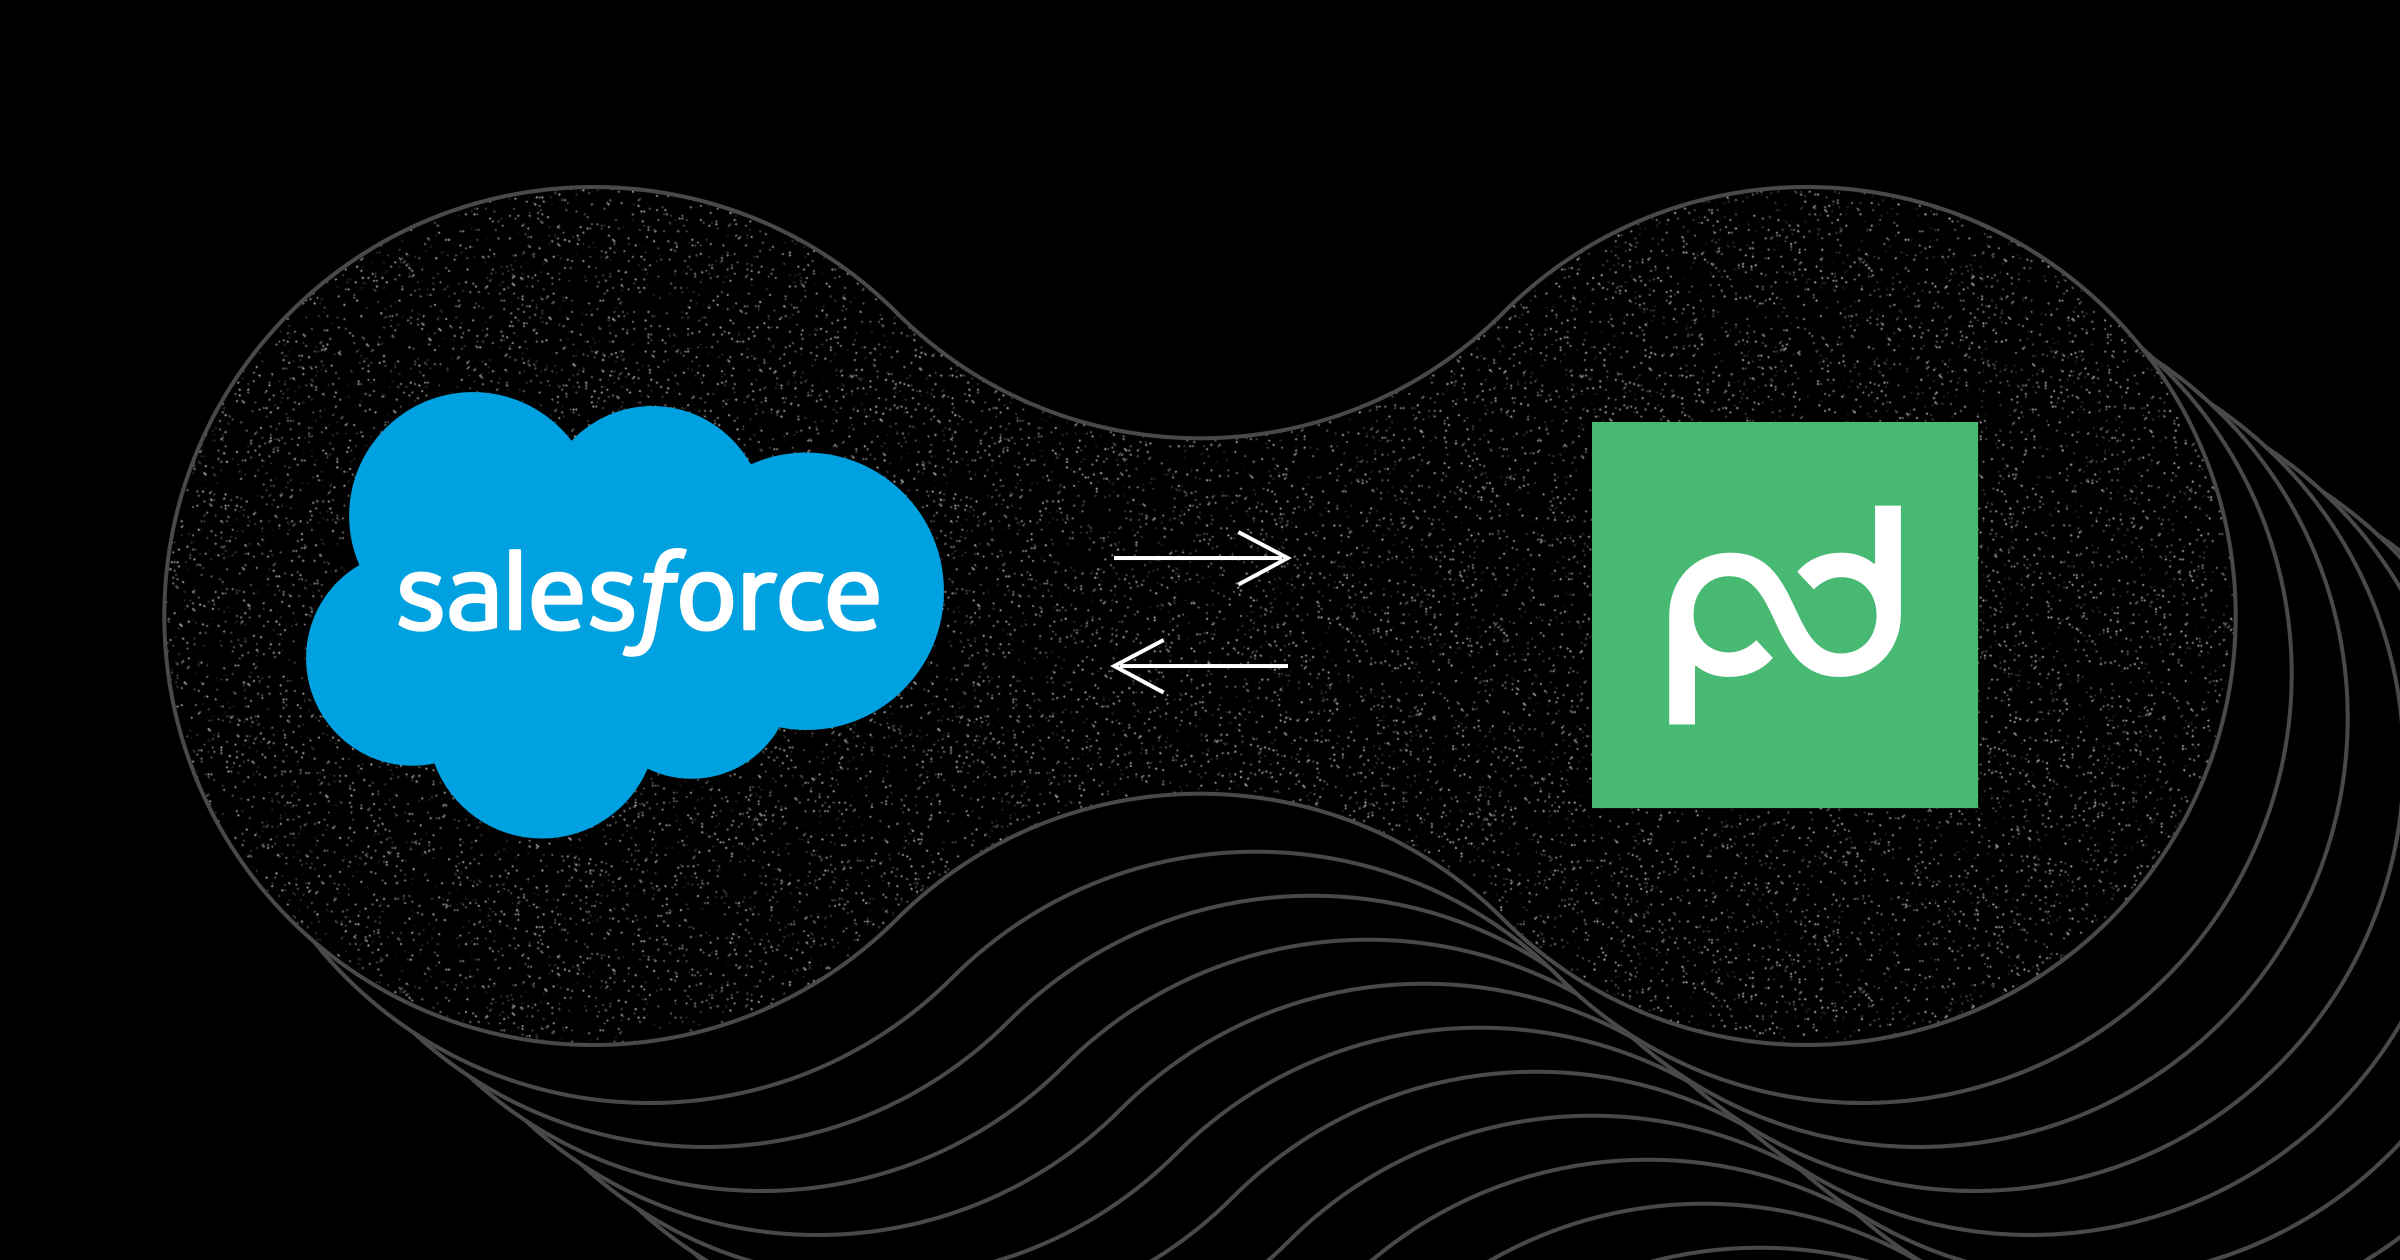 New Salesforce integration update takes the effort out of building and sending docs